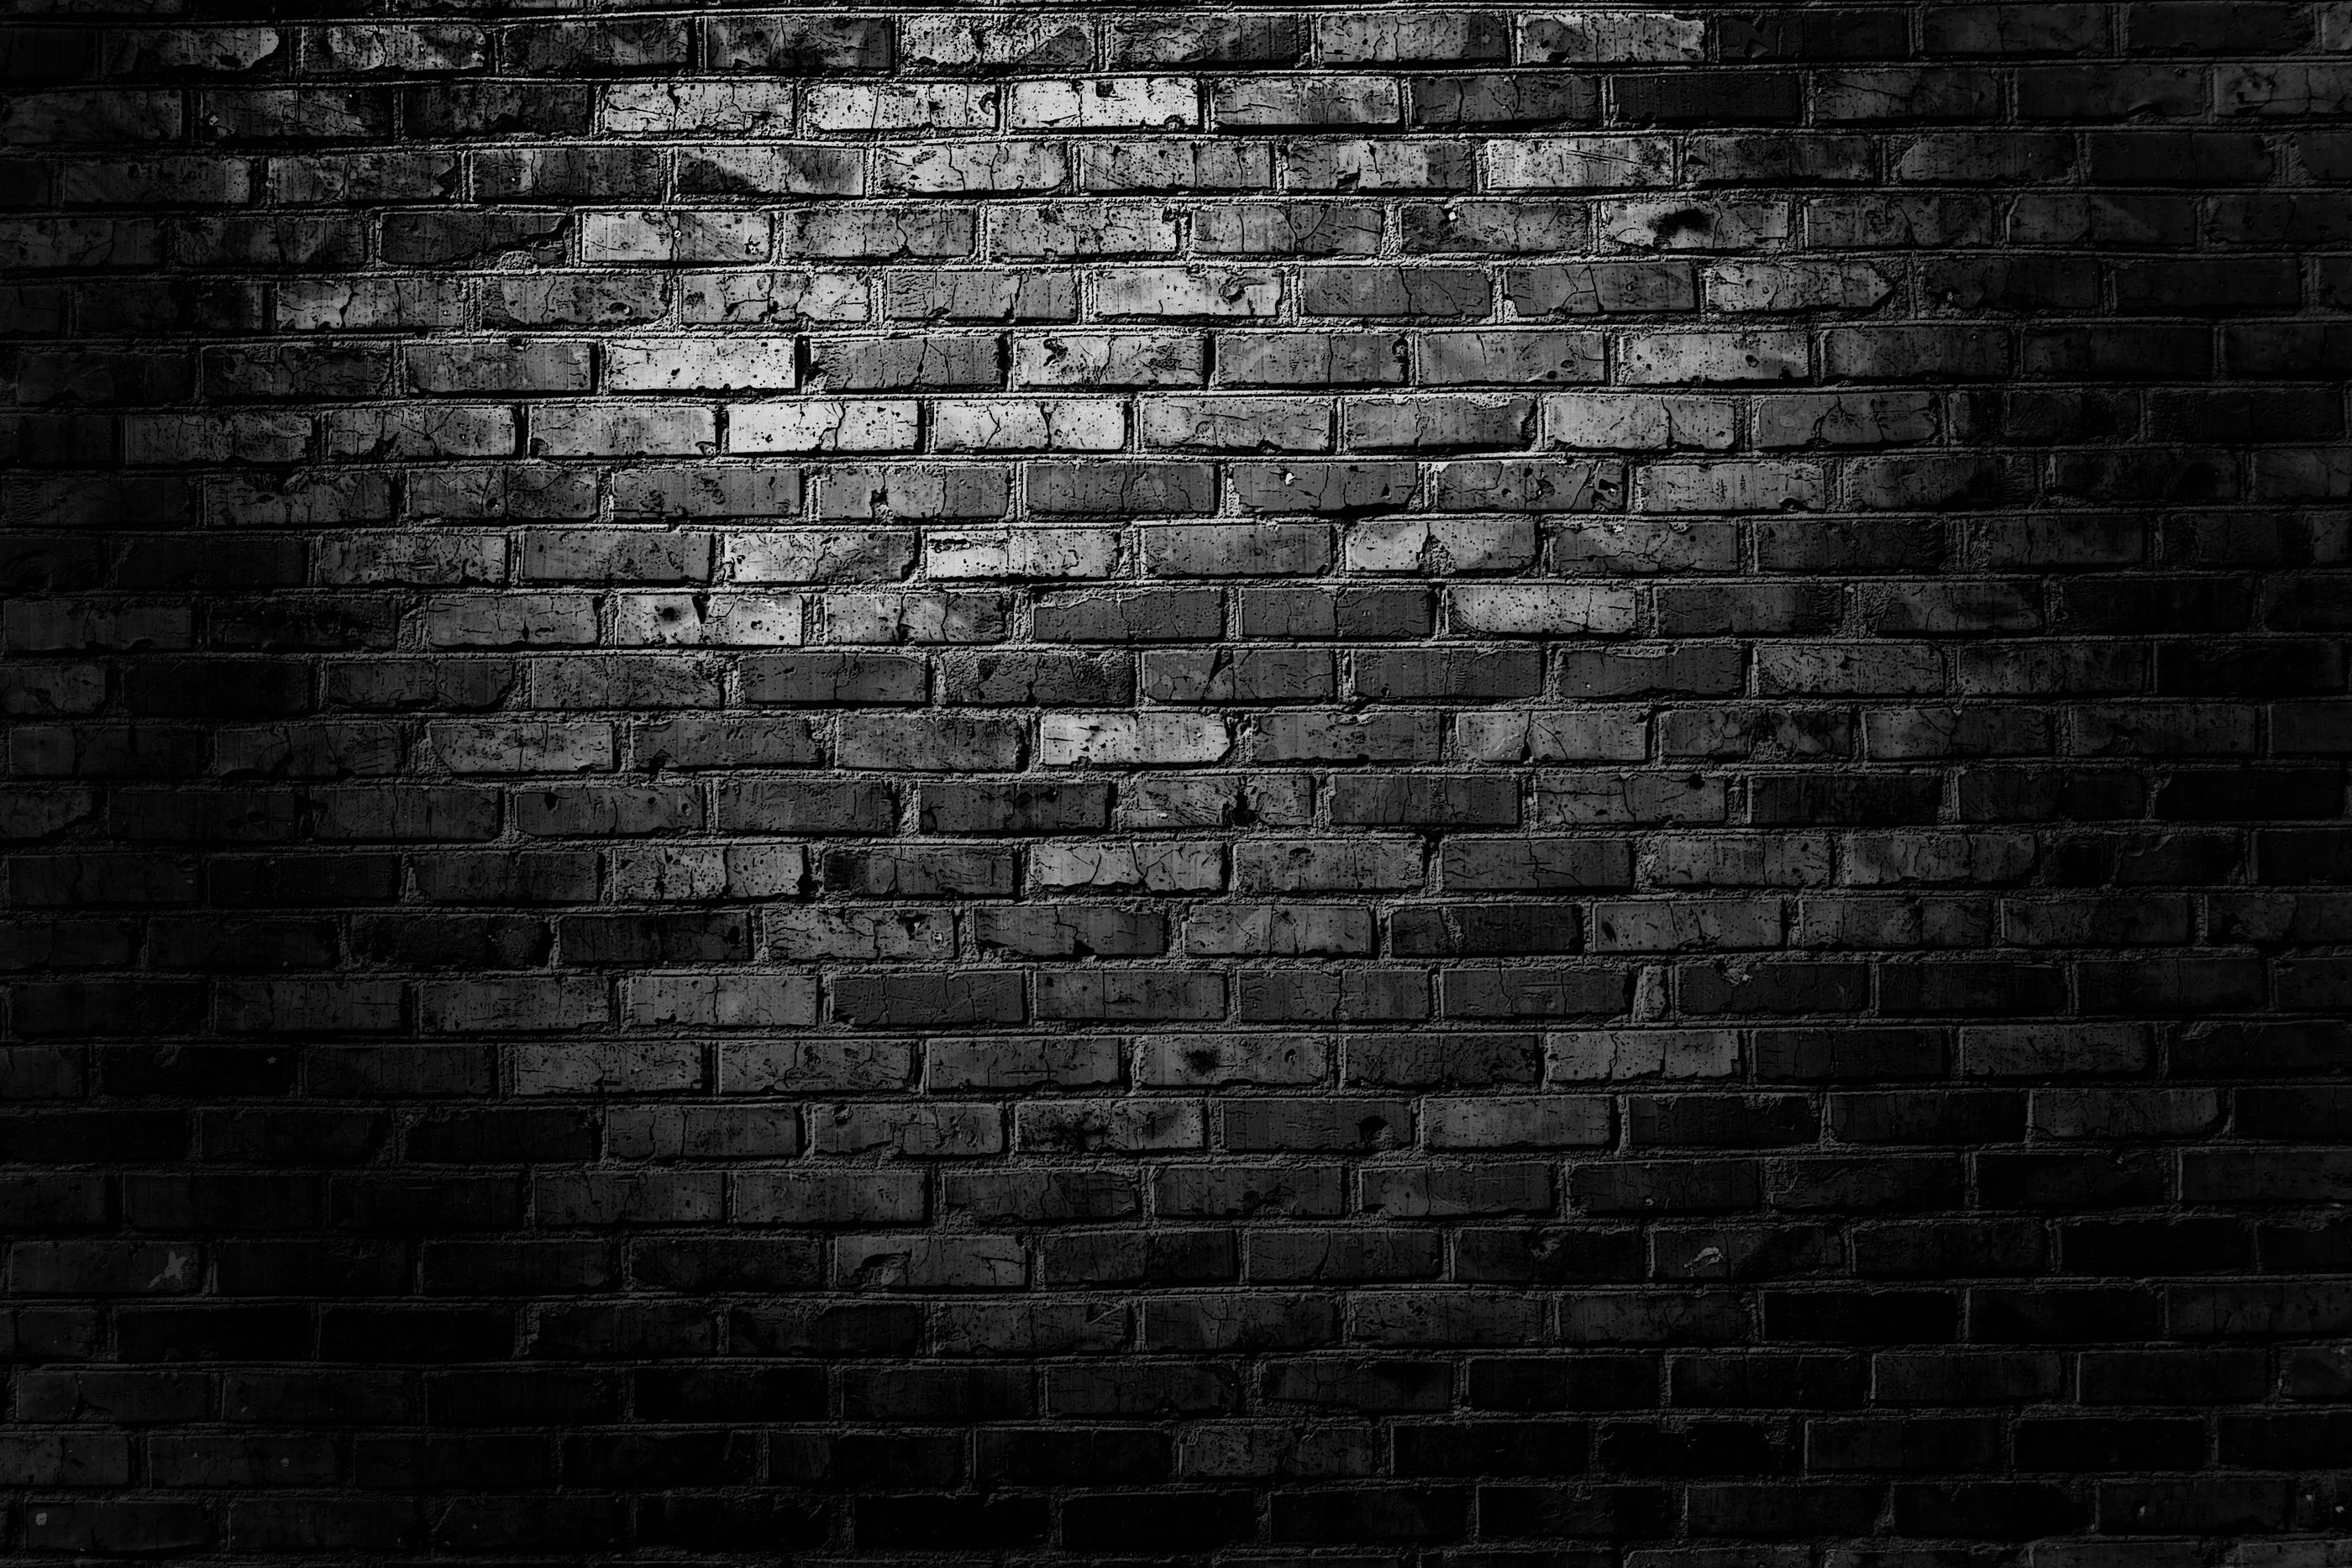 Black Brick Wall Pin By Mmmmxo On O P E N Inspiration Black Brick